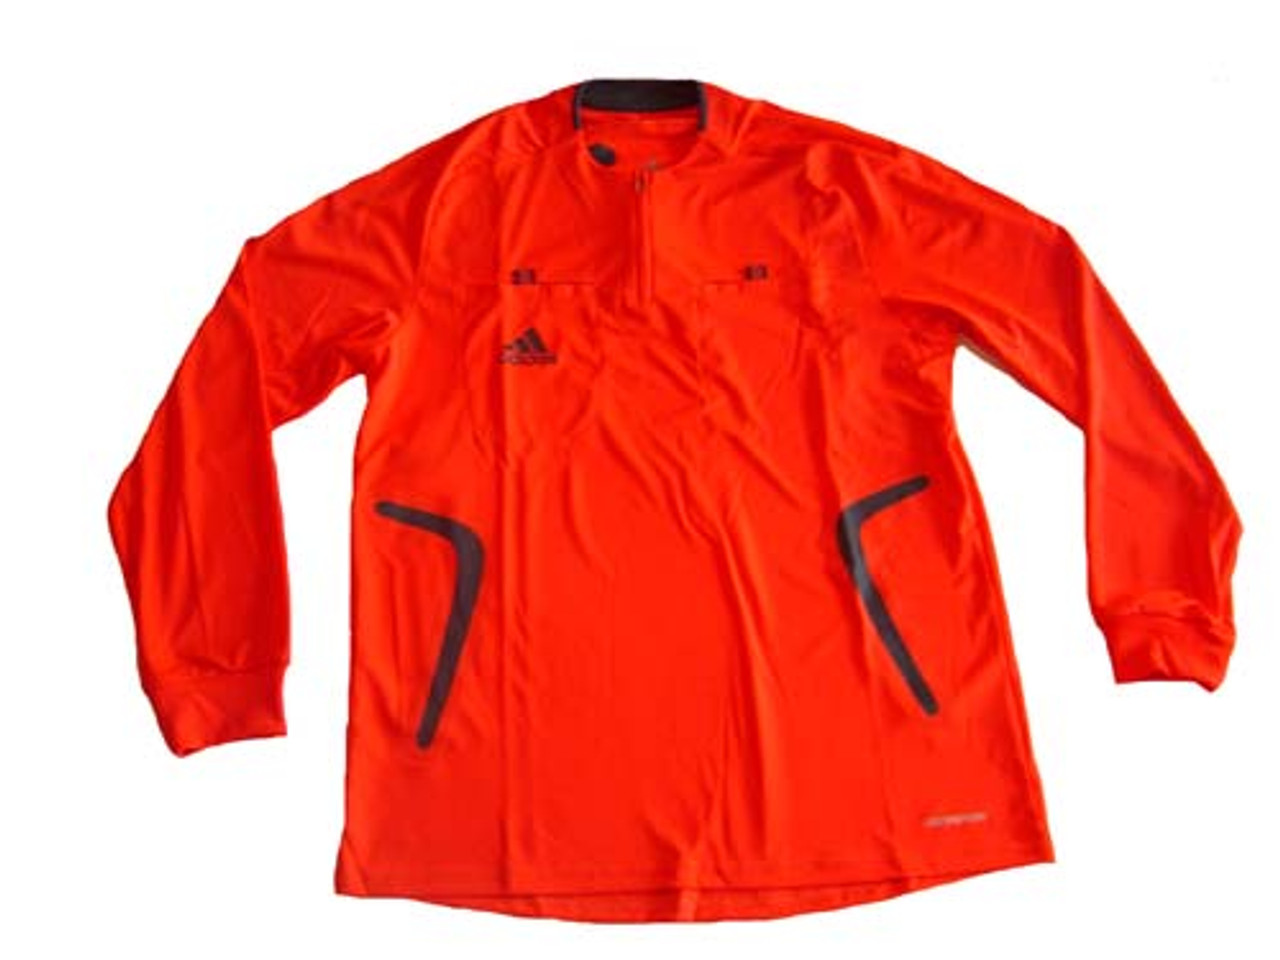 ADIDAS EURO 2008 OFFICIAL L/S REFEREE JERSEY ORANGE